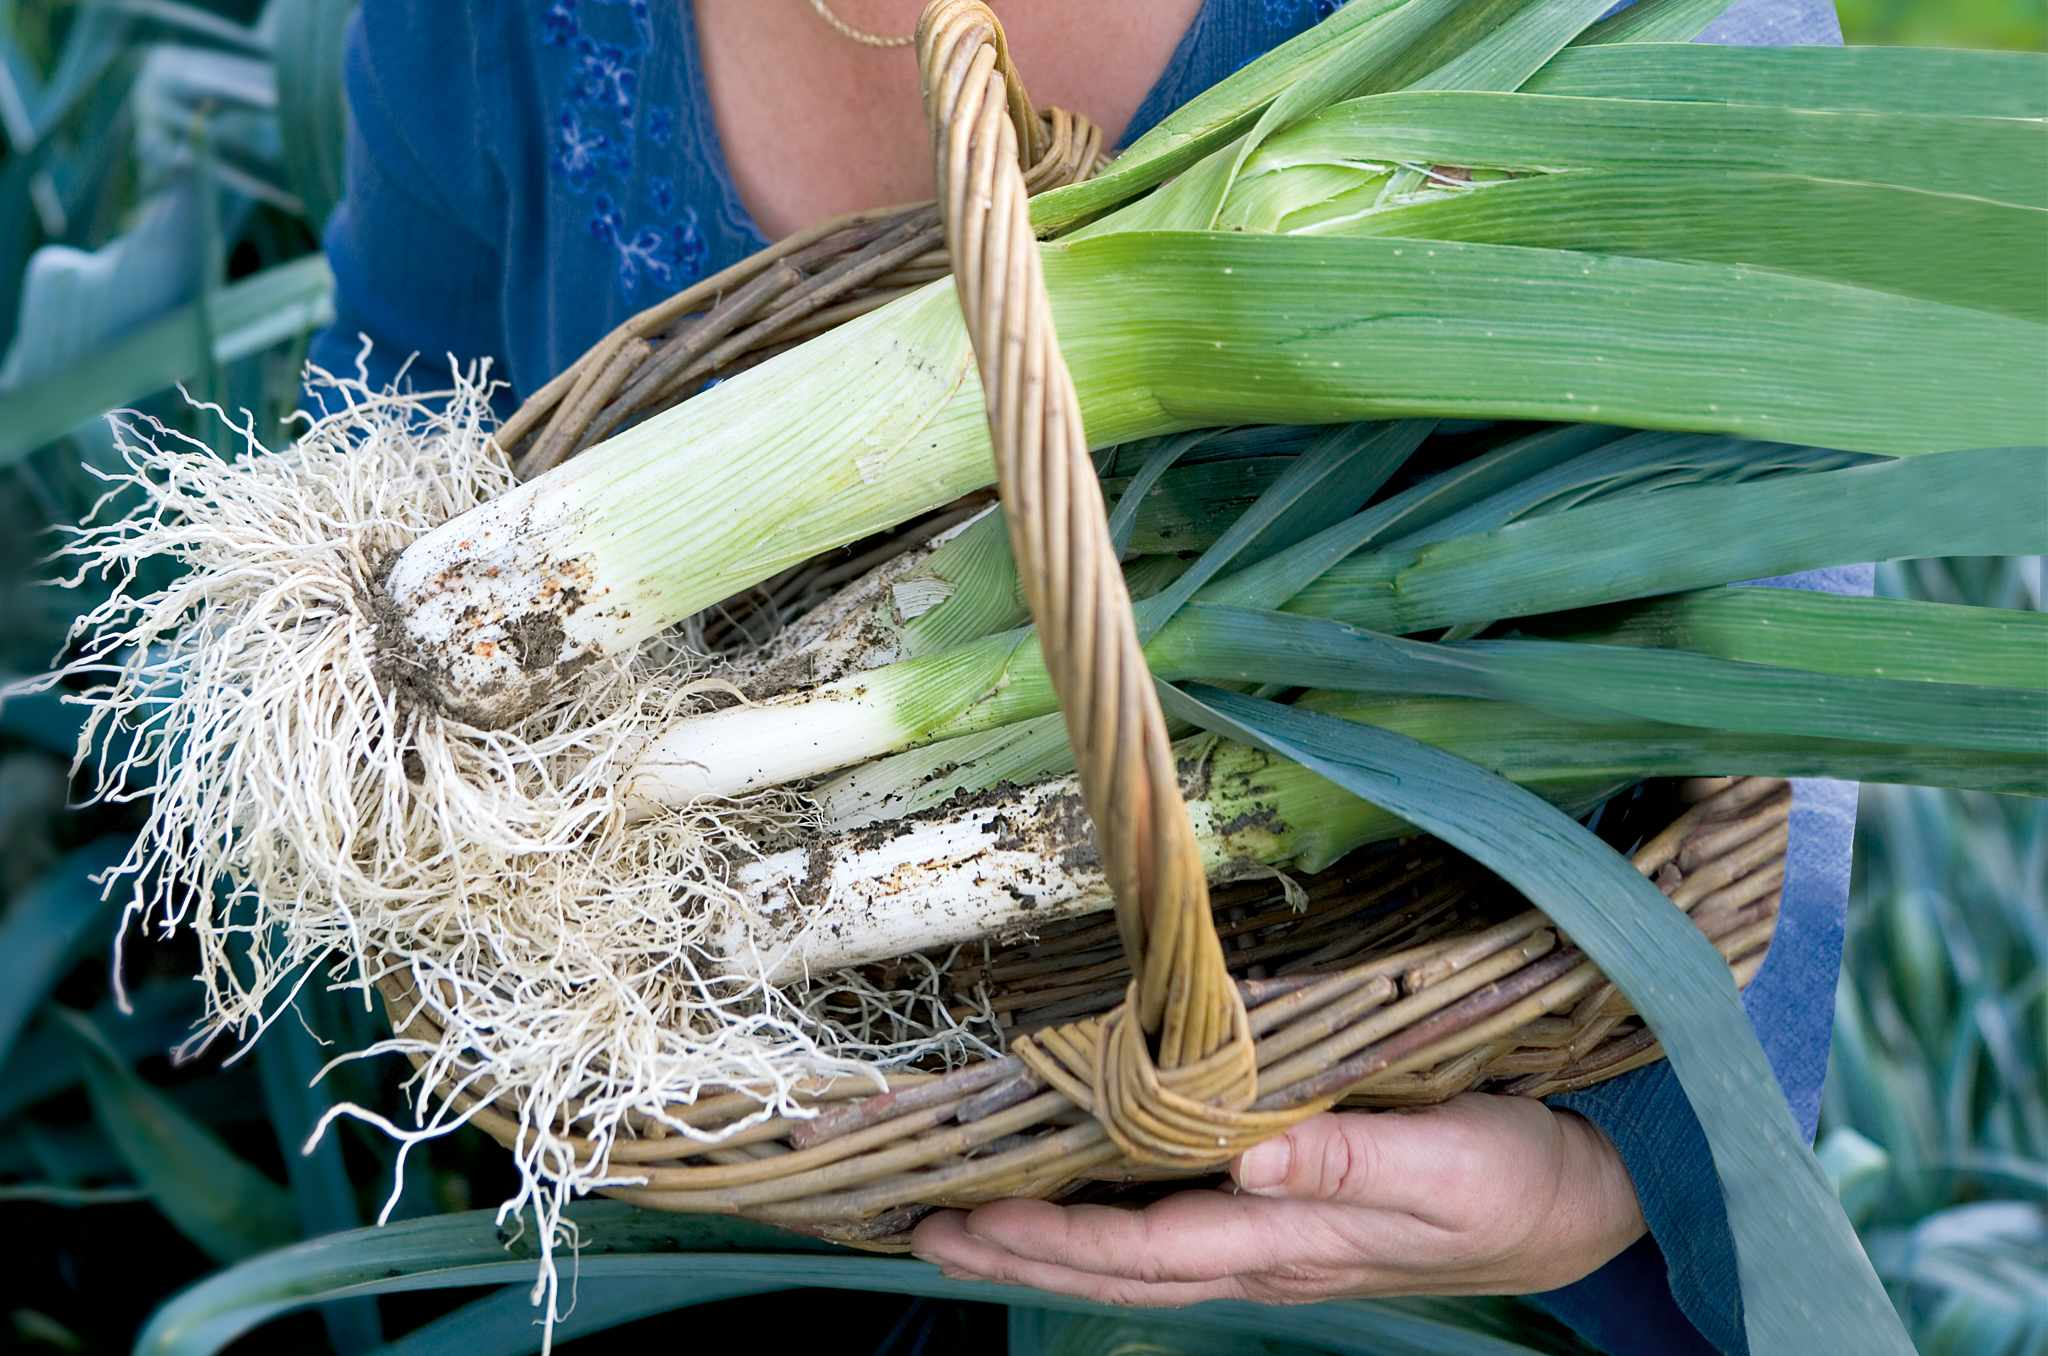 Harvested leeks